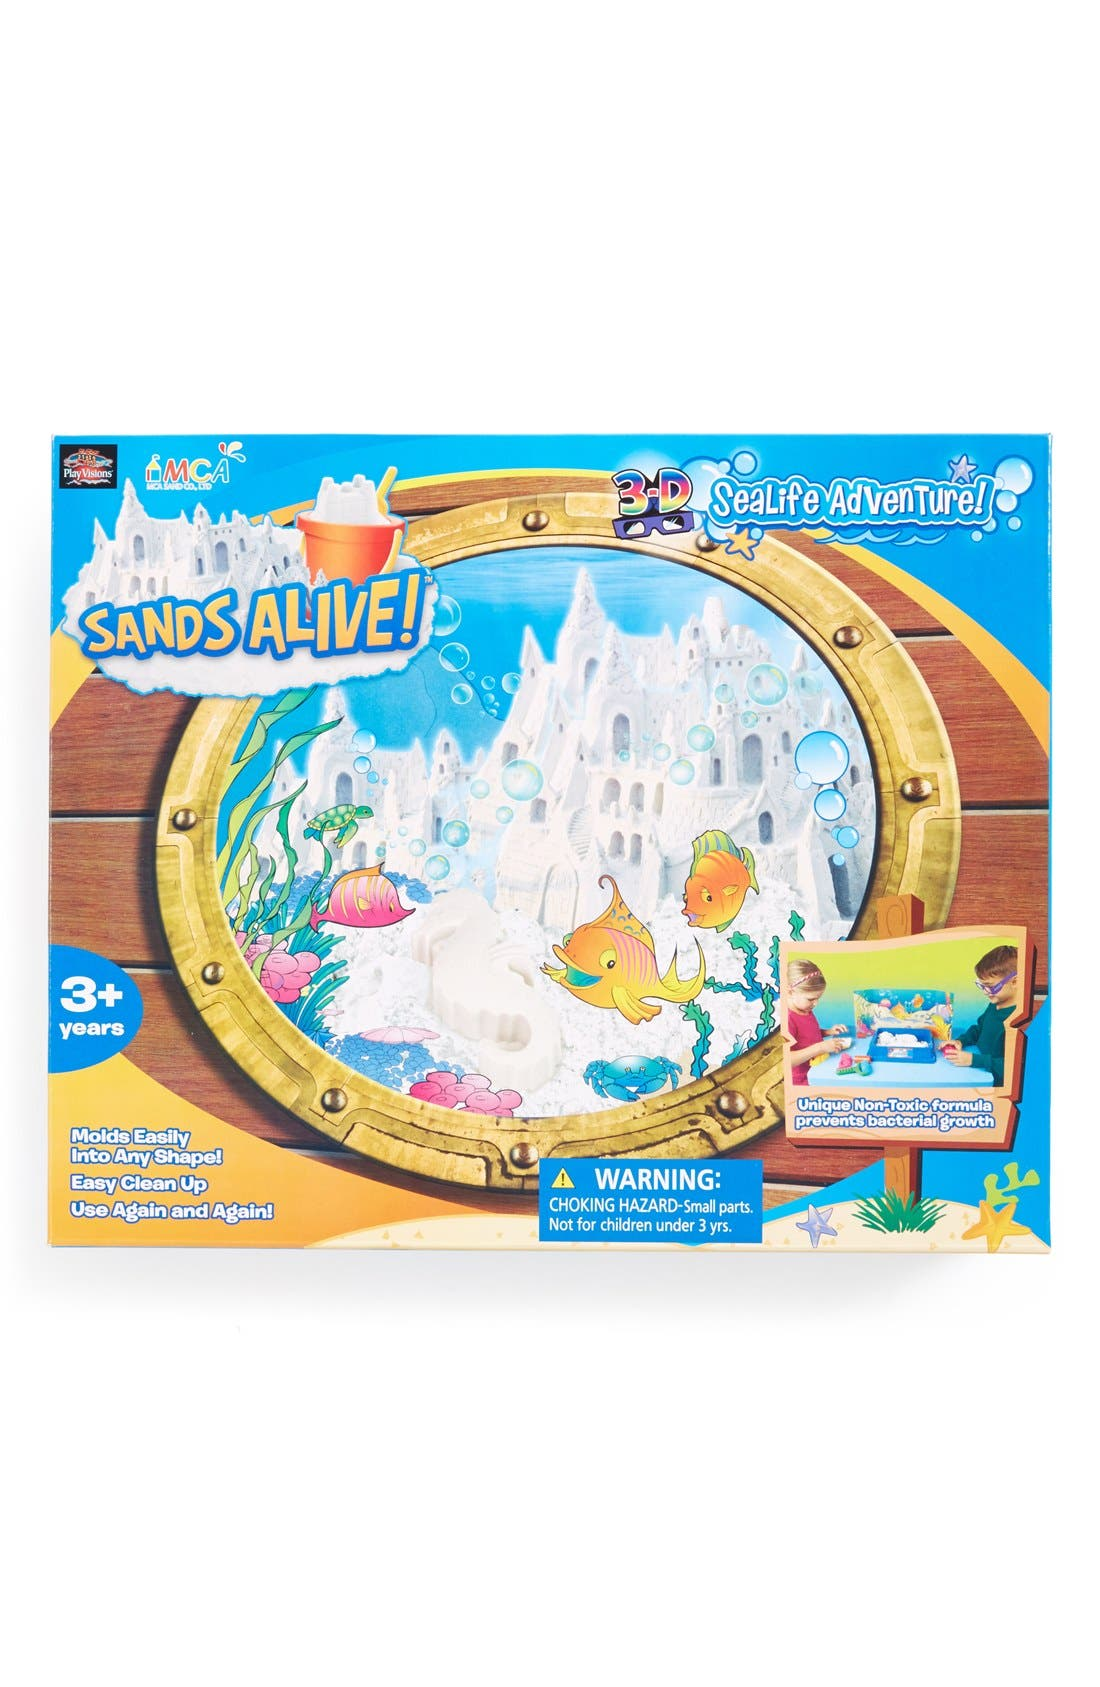 Main Image - Play Visions Toys 'Sands Alive! 3D Sea Life Adventure' Indoor Play Sand Kit